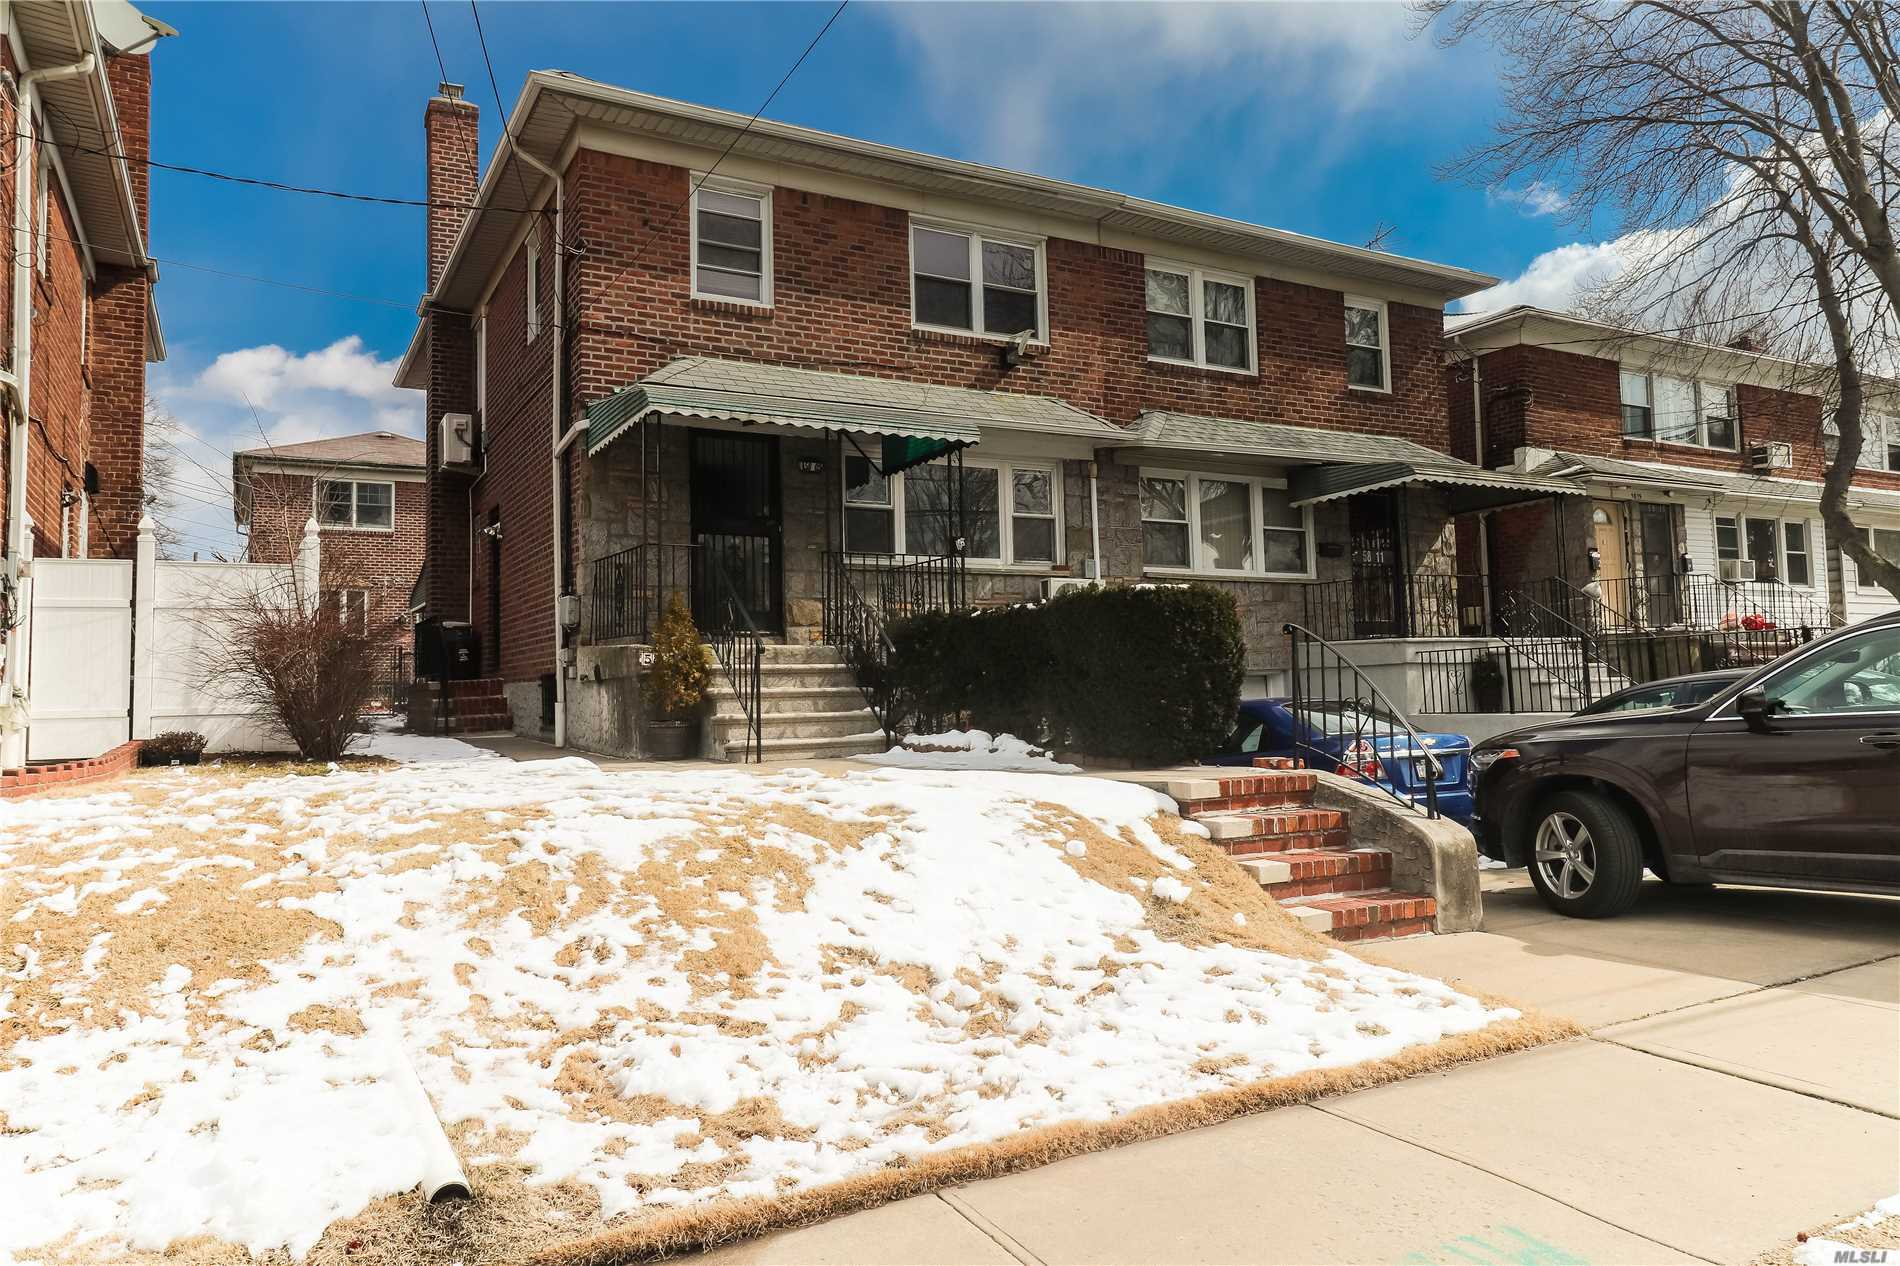 Enormous potential and great investment opportunity! Centrally located, charming colonial home in the heart of Fresh Meadows! Close proximity to shopping, restaurants and major colleges (St. John's University, CUNY Queens College). Underground garage and two-car driveway!